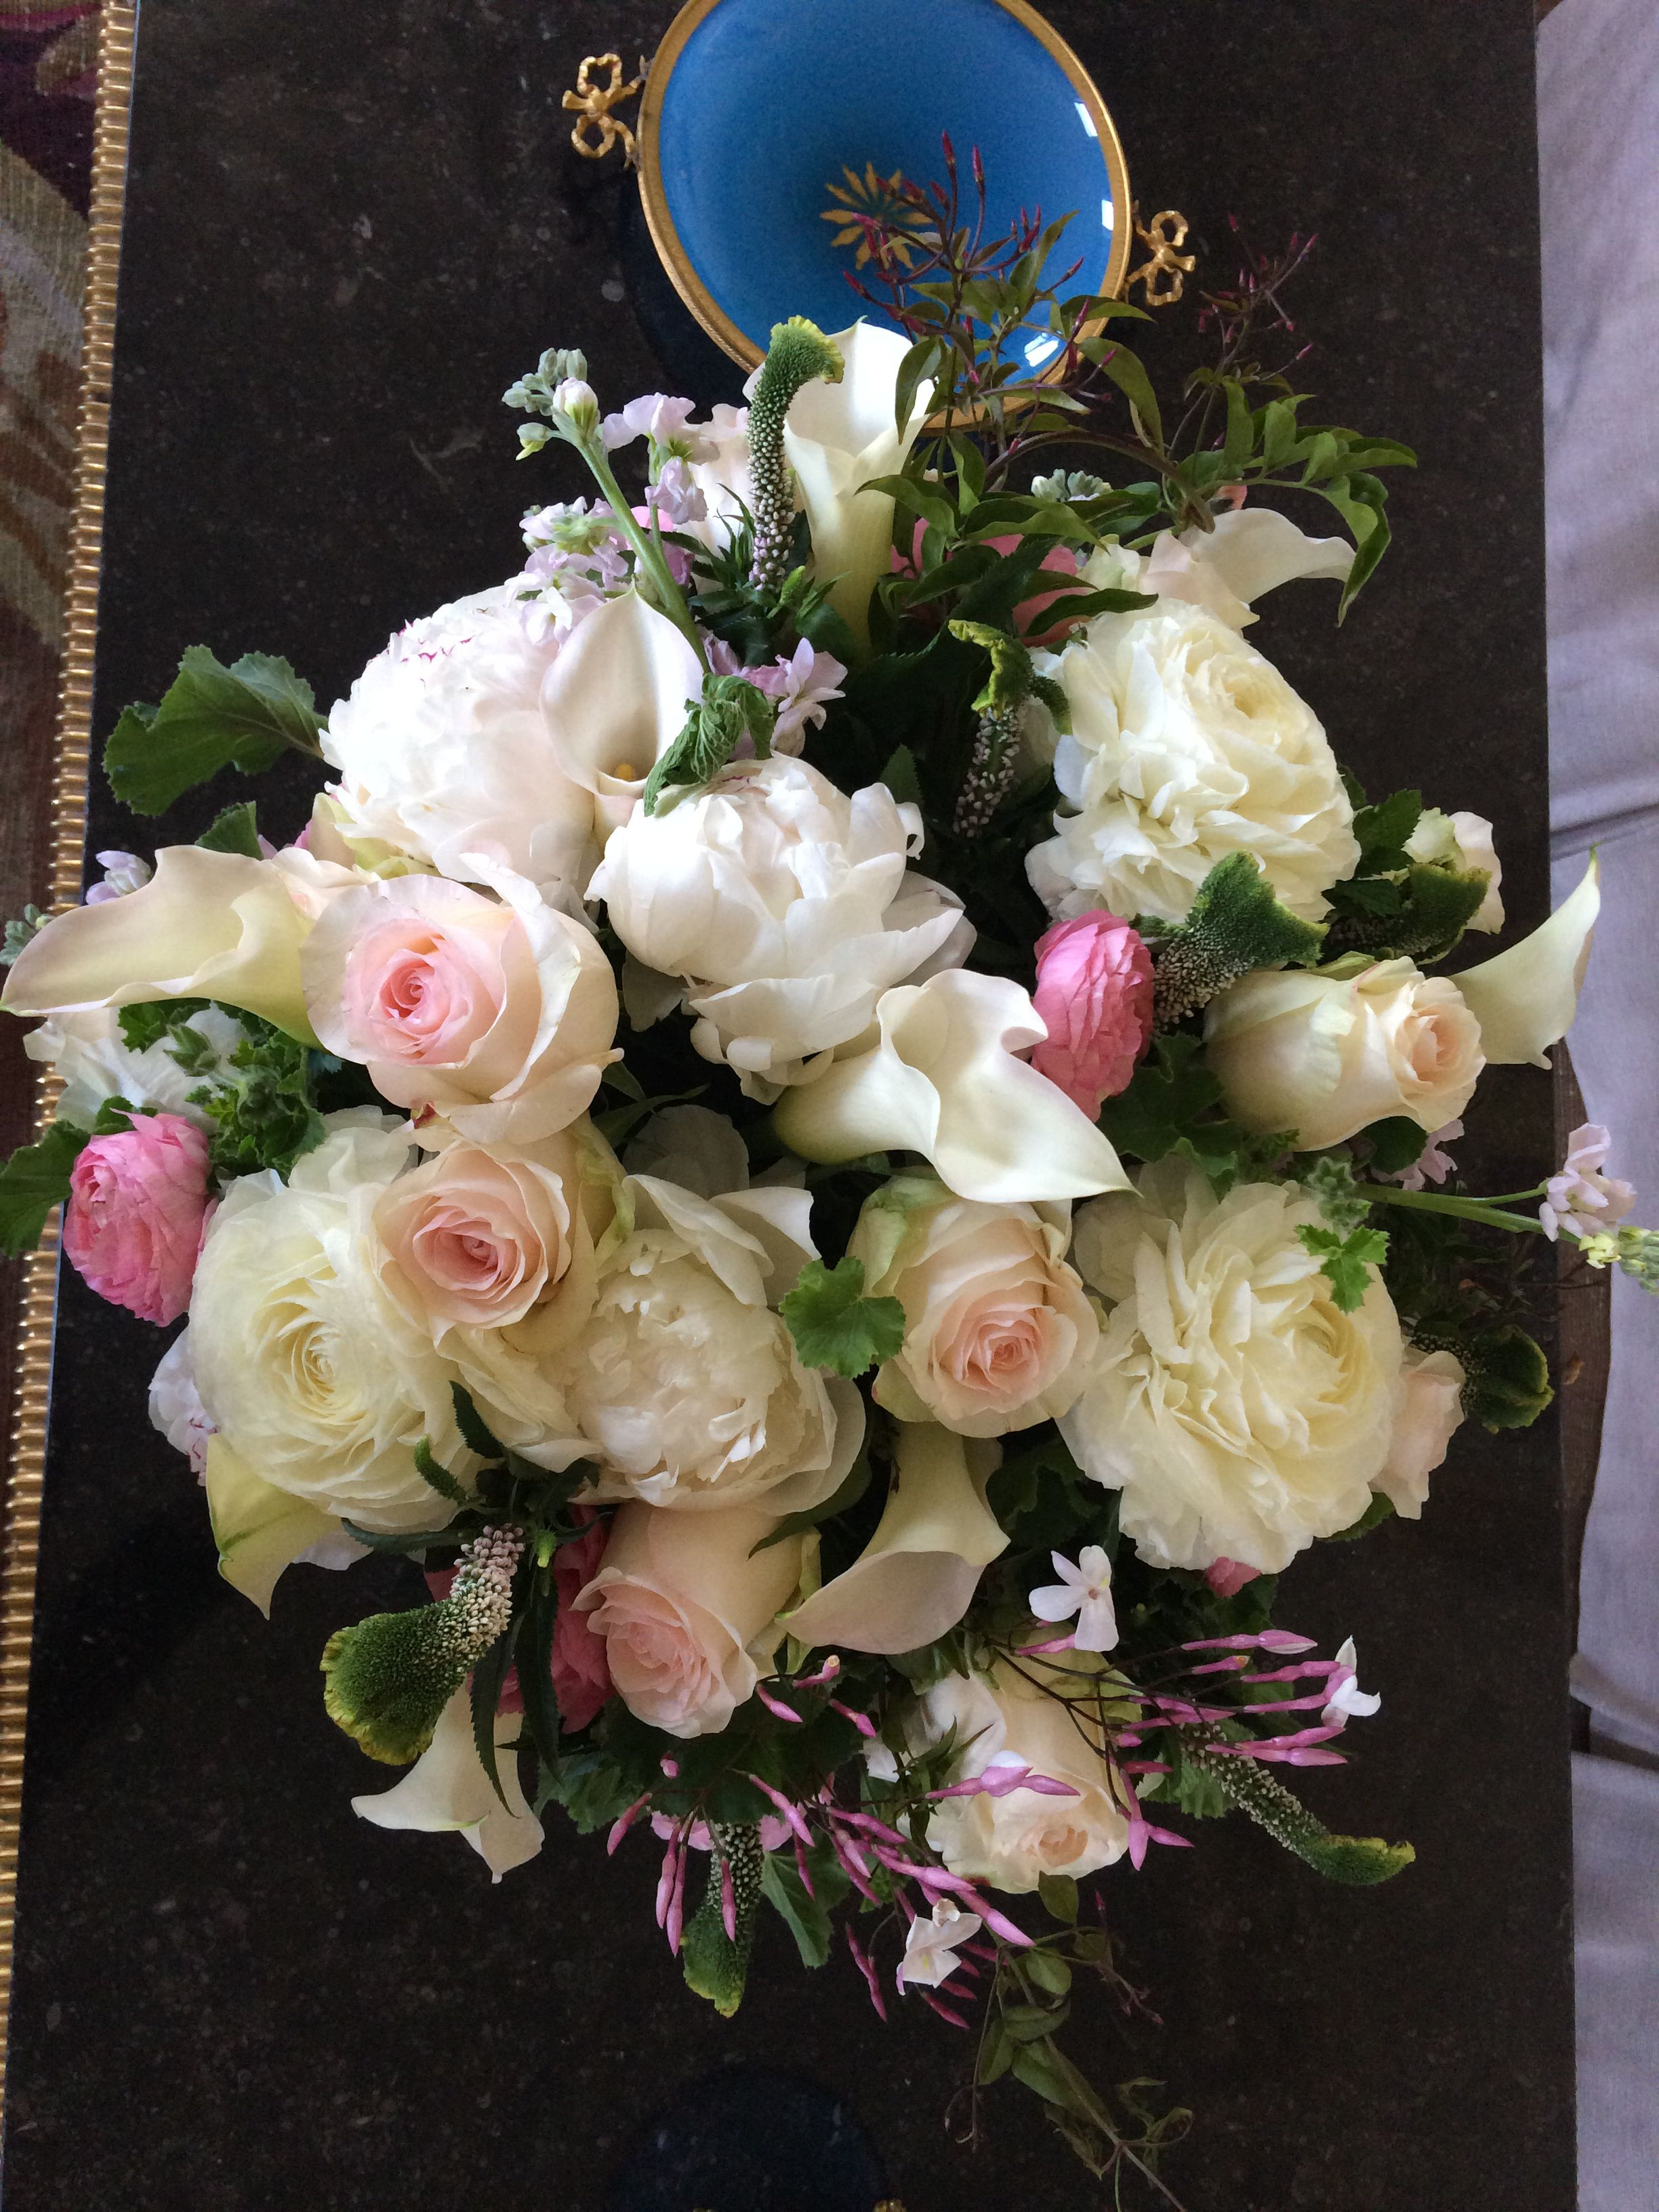 Peonies Japanese Ranunculus Jazmin Www Thearrogantbloom Com Nyc Luxury Floral Floral Centerpieces Floral Floral Wreath